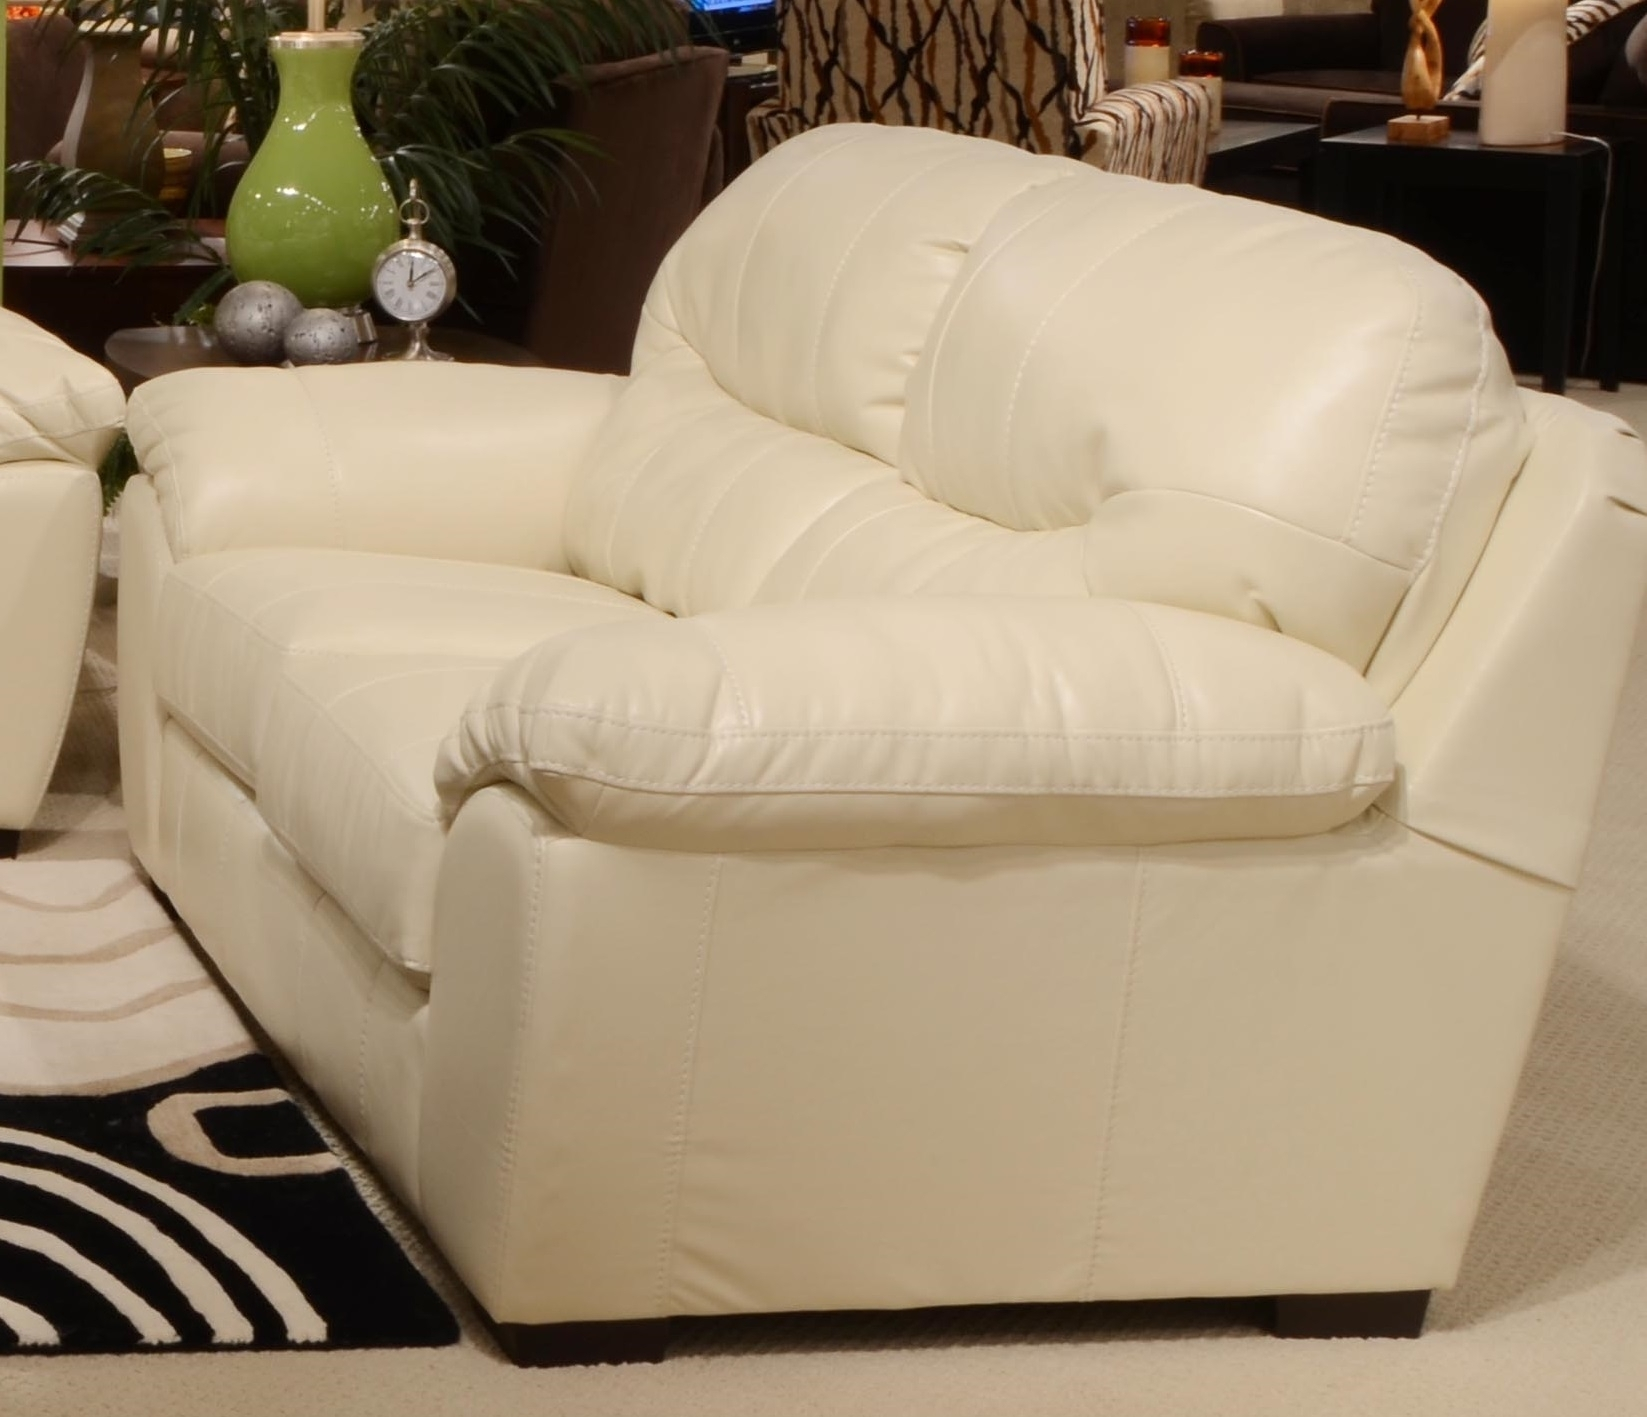 Off White Leather Sofa 26 With Off White Leather Sofa | Bcctl intended for Off White Leather Sofas (Image 6 of 10)